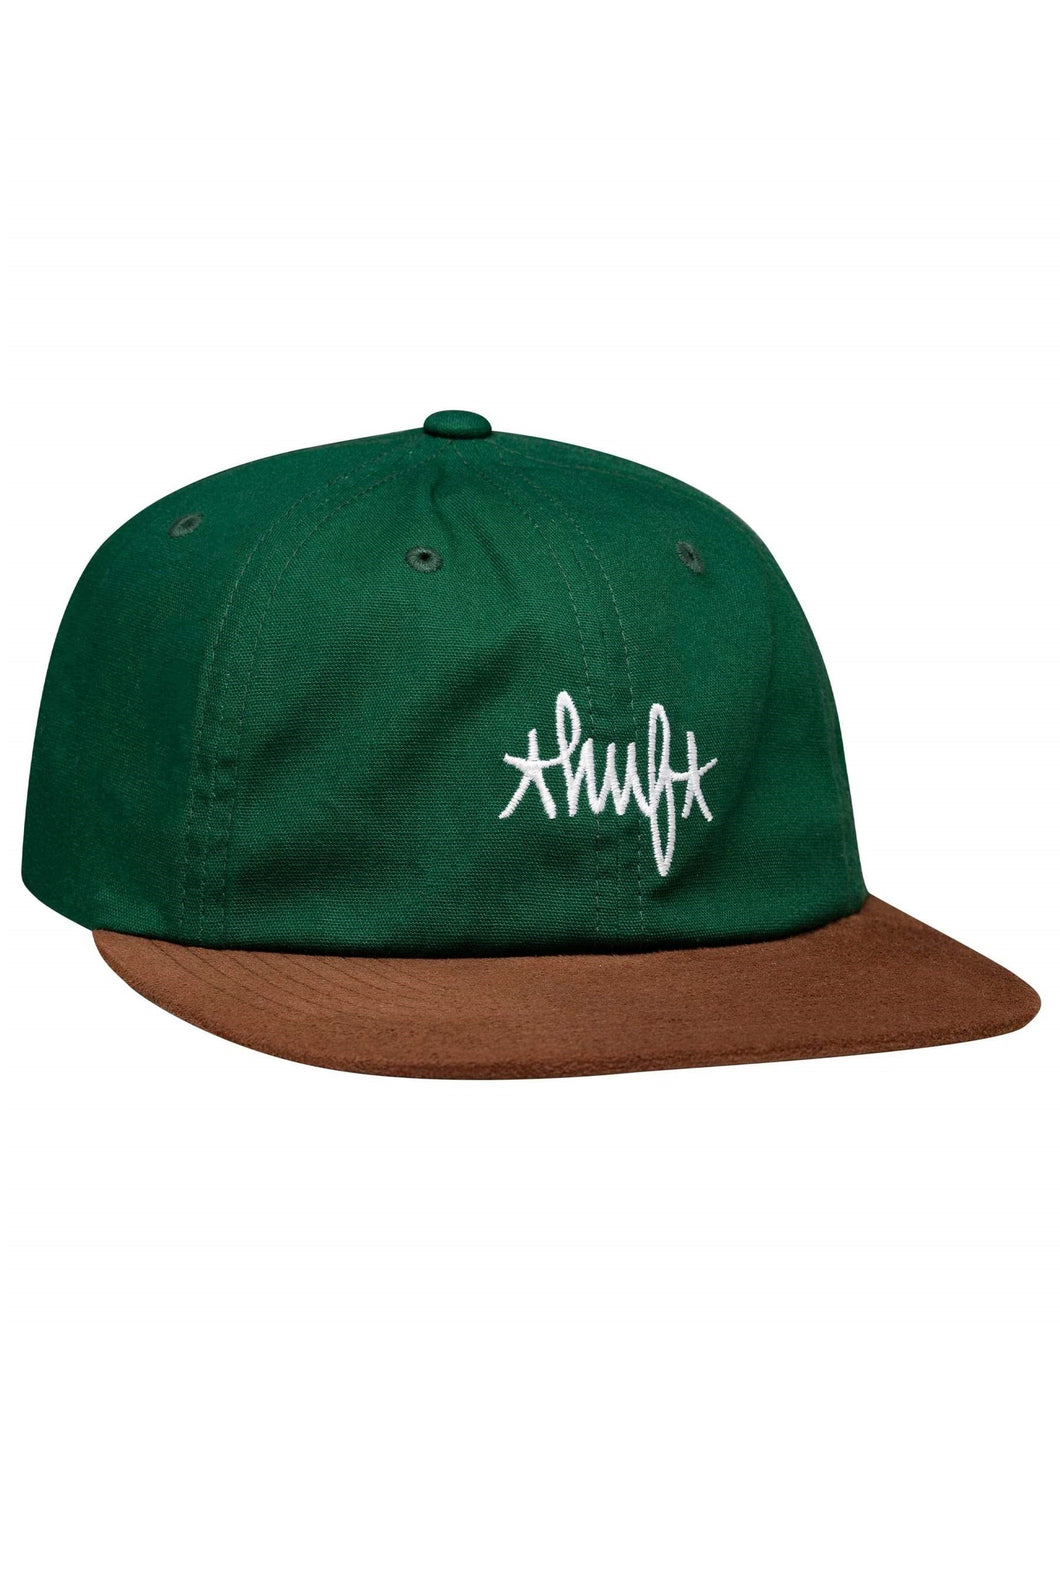 HUF Cap 6 Panel Haze Contrast Forest Green - Circle Collective